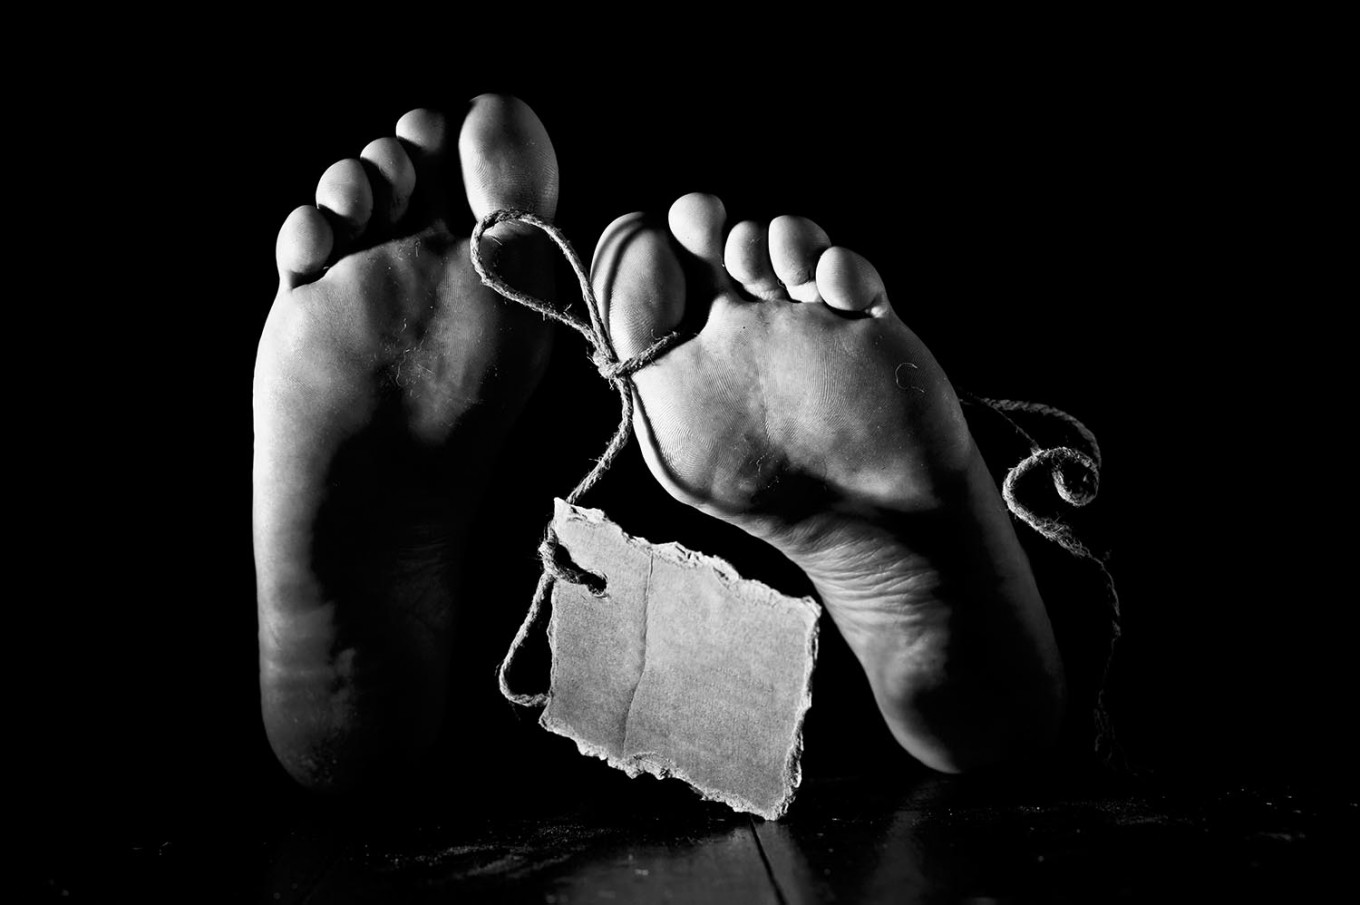 Harare Woman Speaks After Daughter's Corpse 'Raped' By Stranger